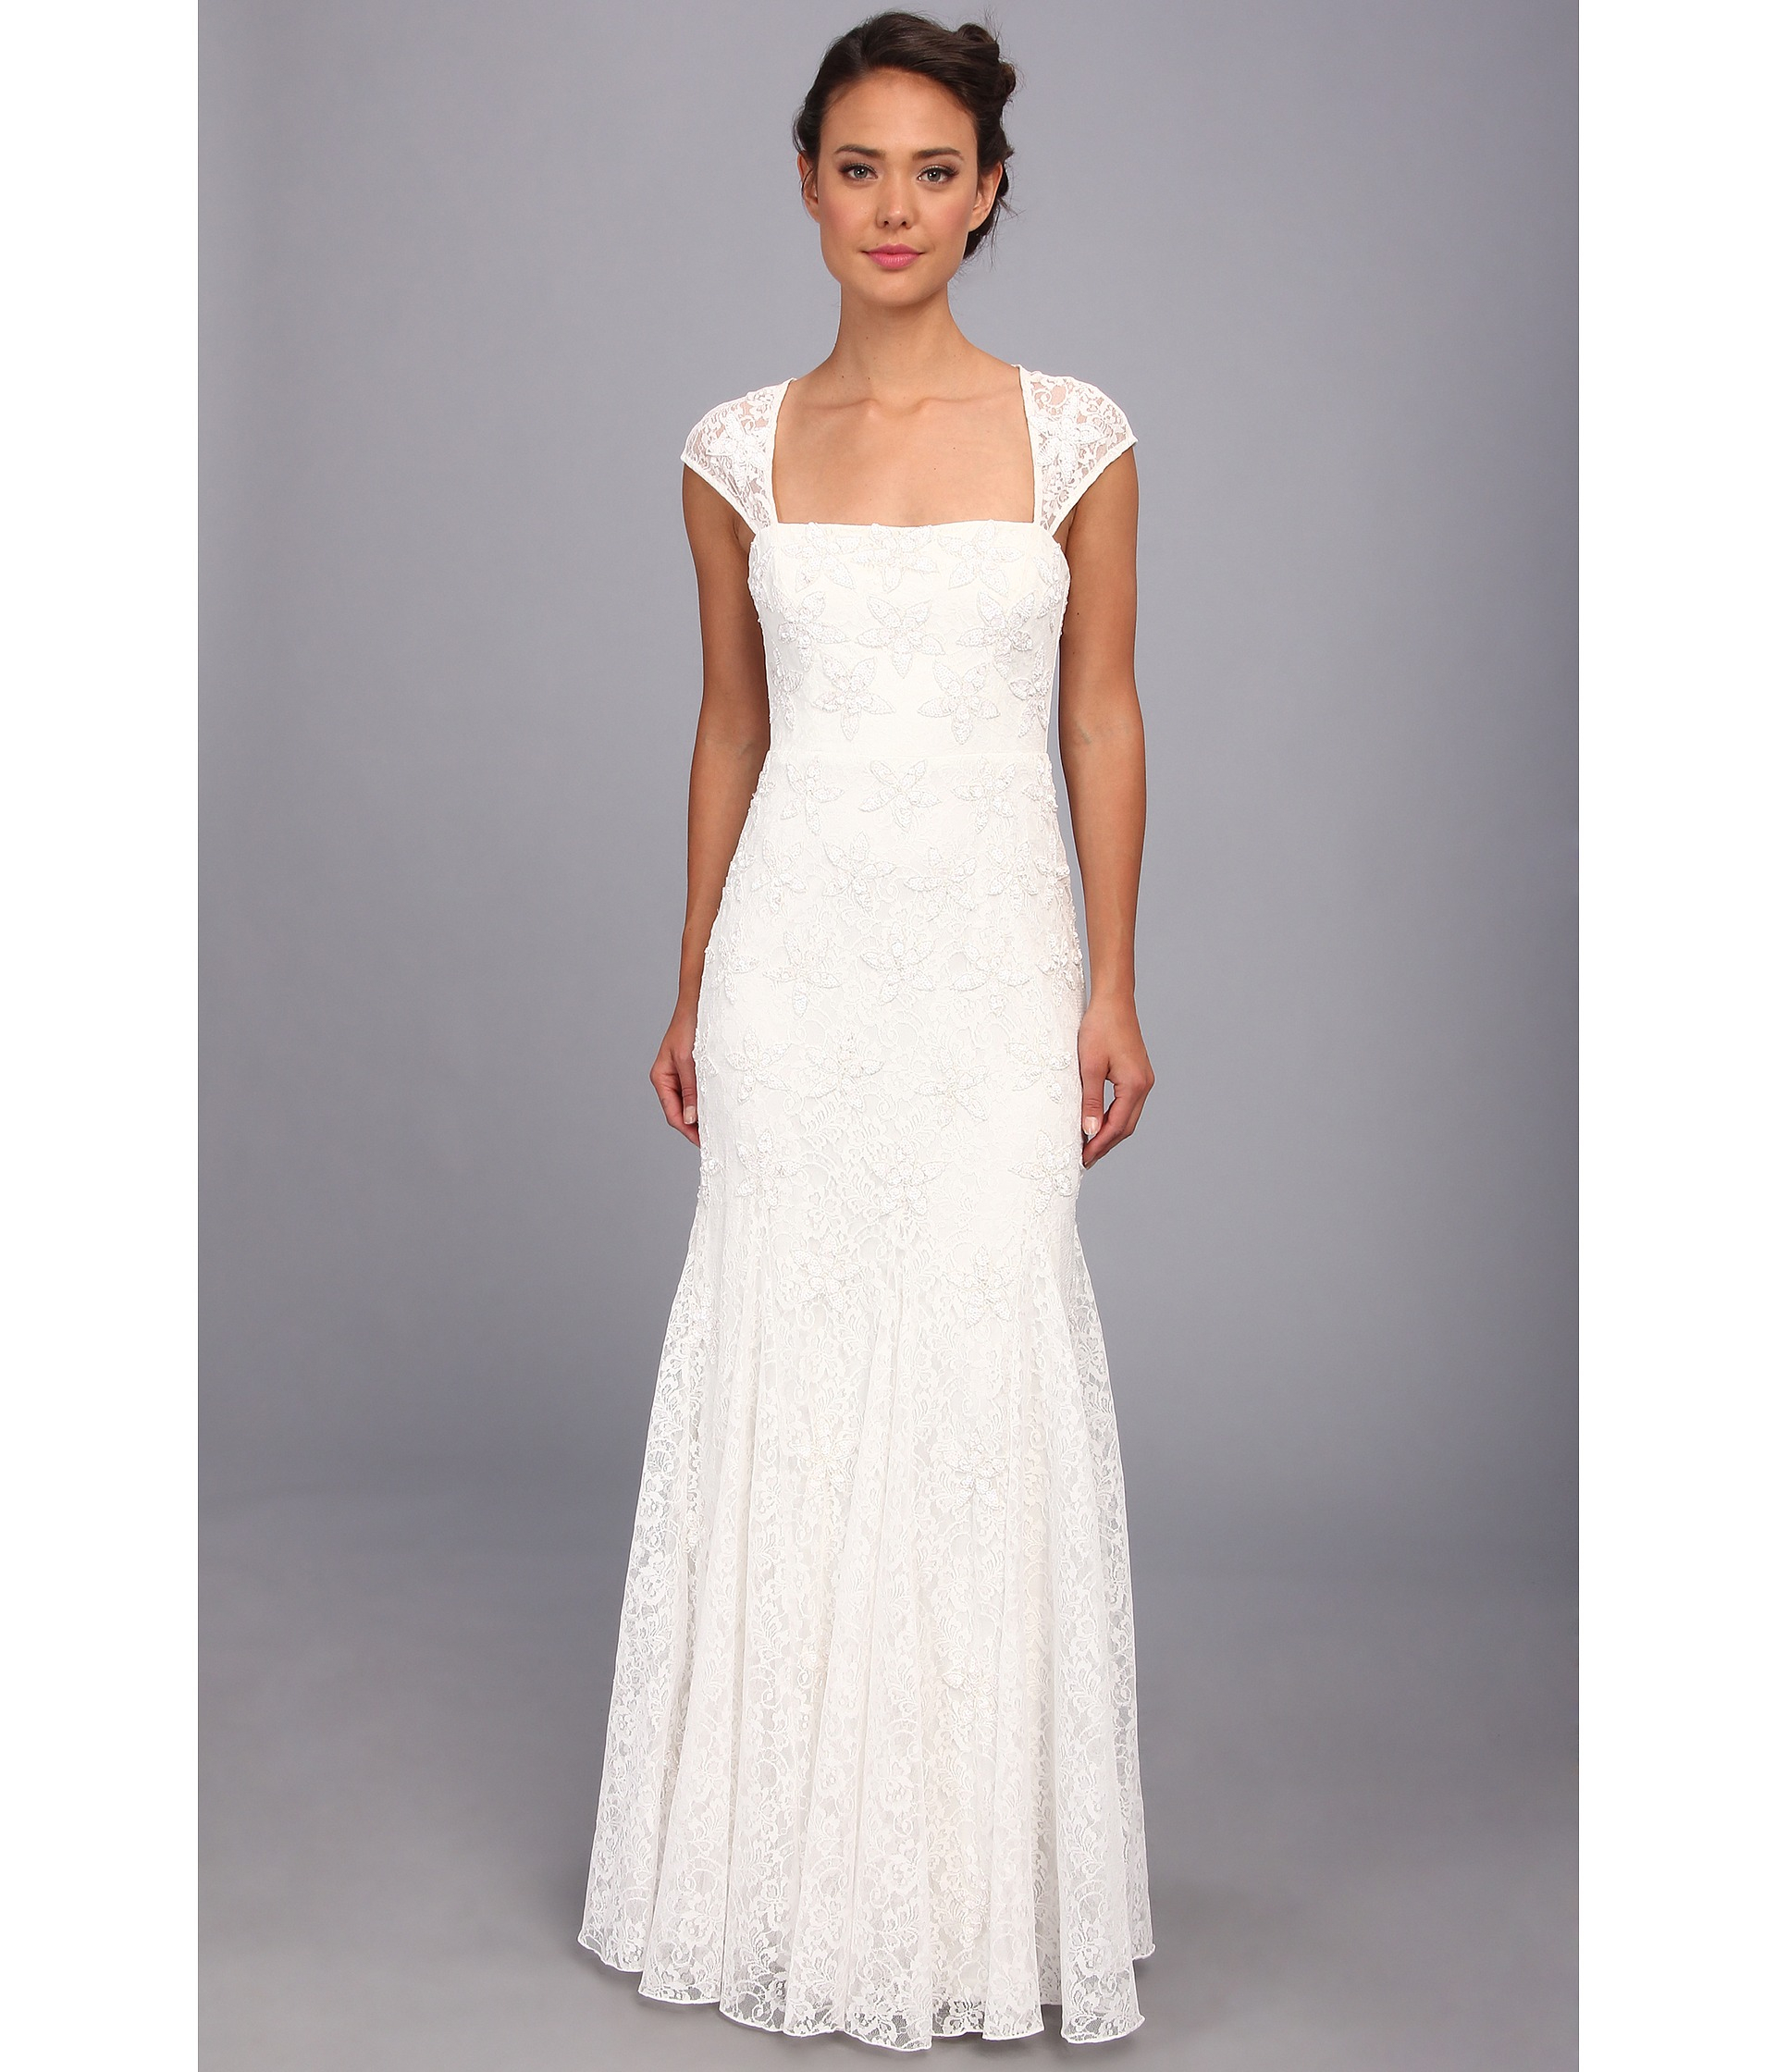 Lyst - Adrianna Papell Beaded Gown W Envelope Back in White